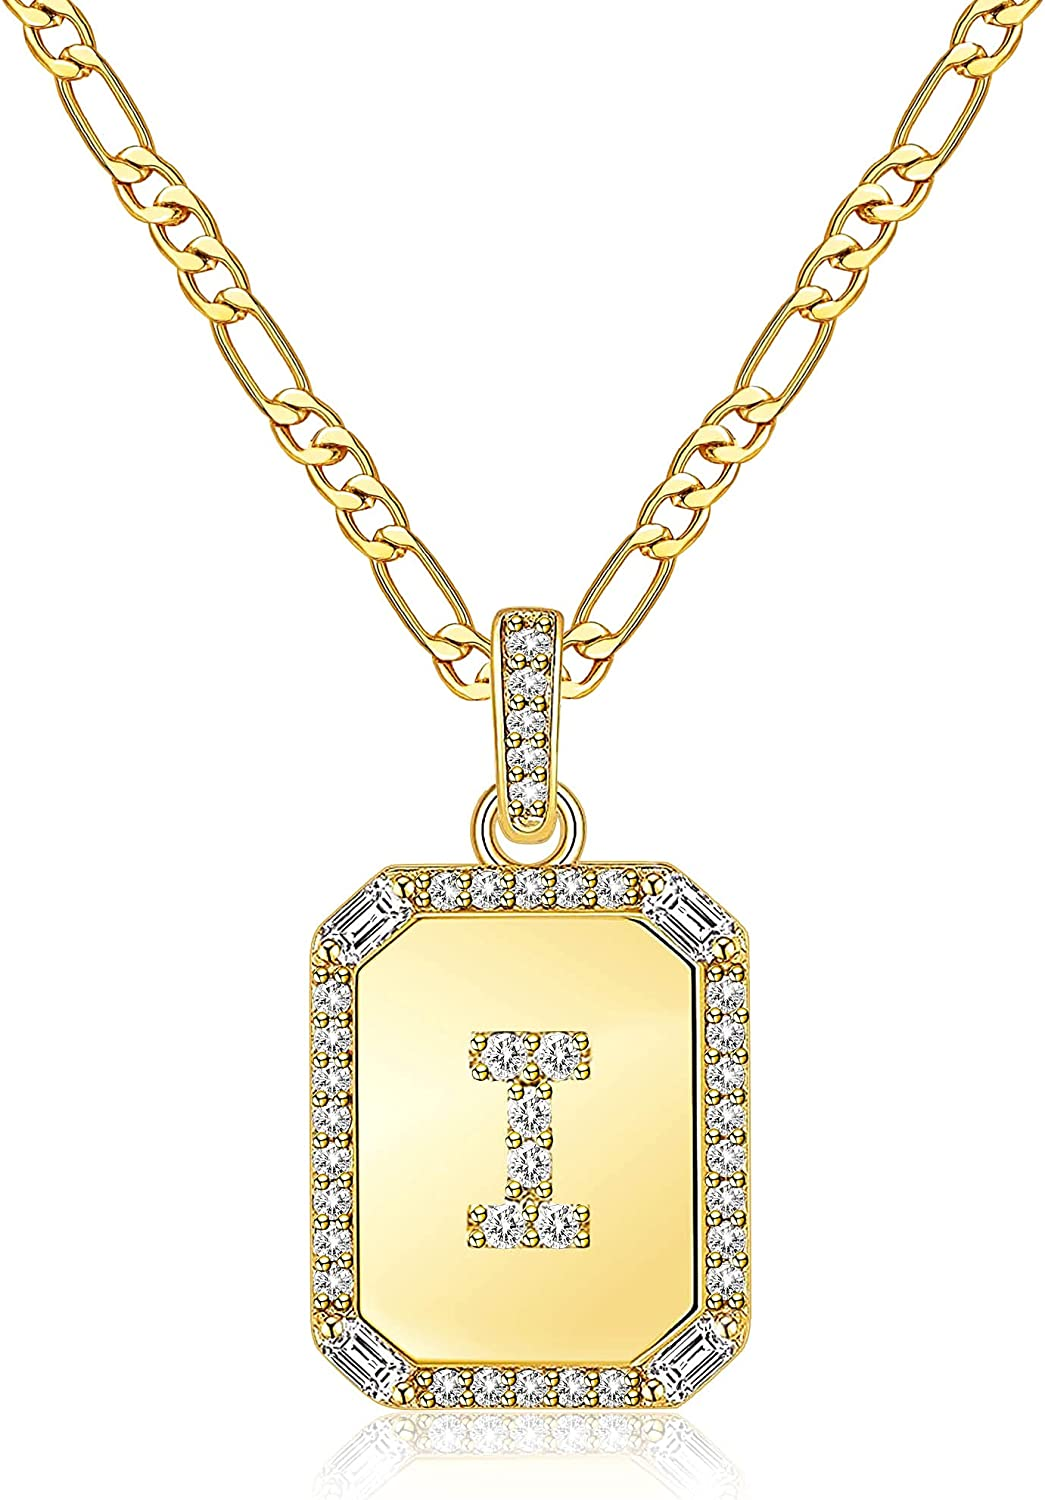 Gold Initial Necklaces for Women,Letter Necklace for Women Girls,Rectangle Necklace with Letters Monogram 18K Gold Plated Alhpabets 26 Pendant Womens Necklace Stainless Steel Box Chain